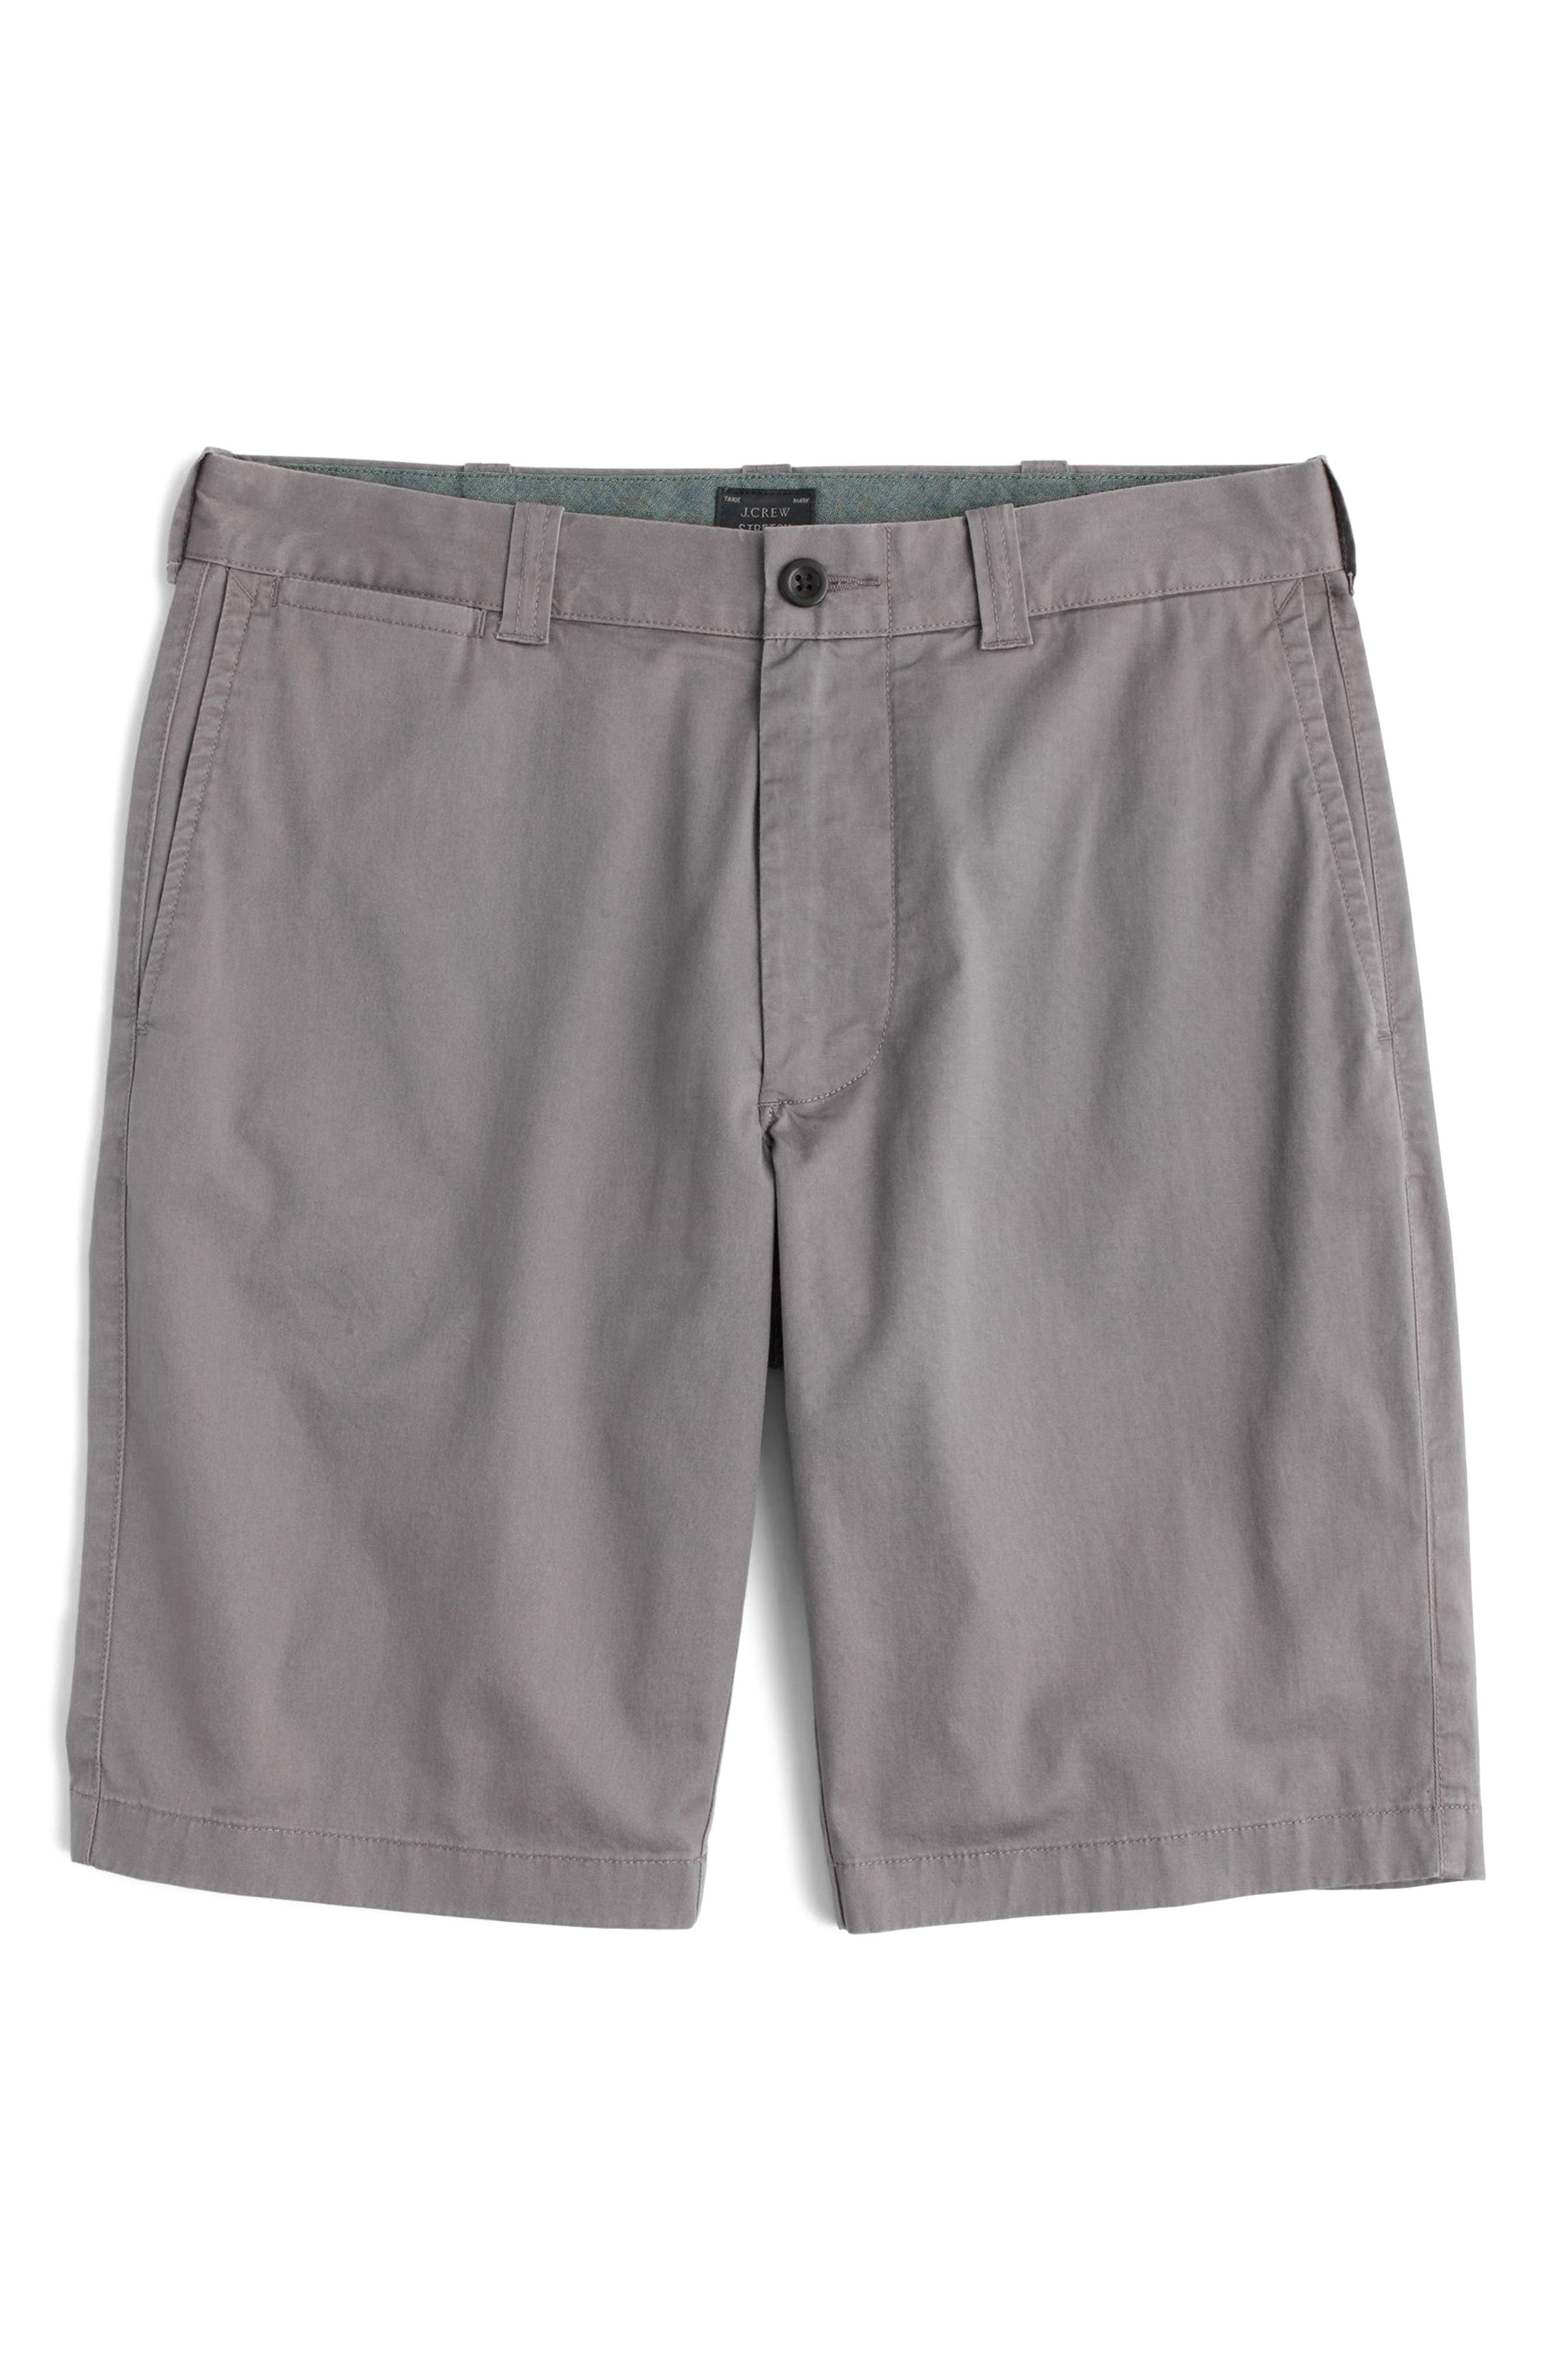 Stretch Shorts,                         Main,                         color, 020